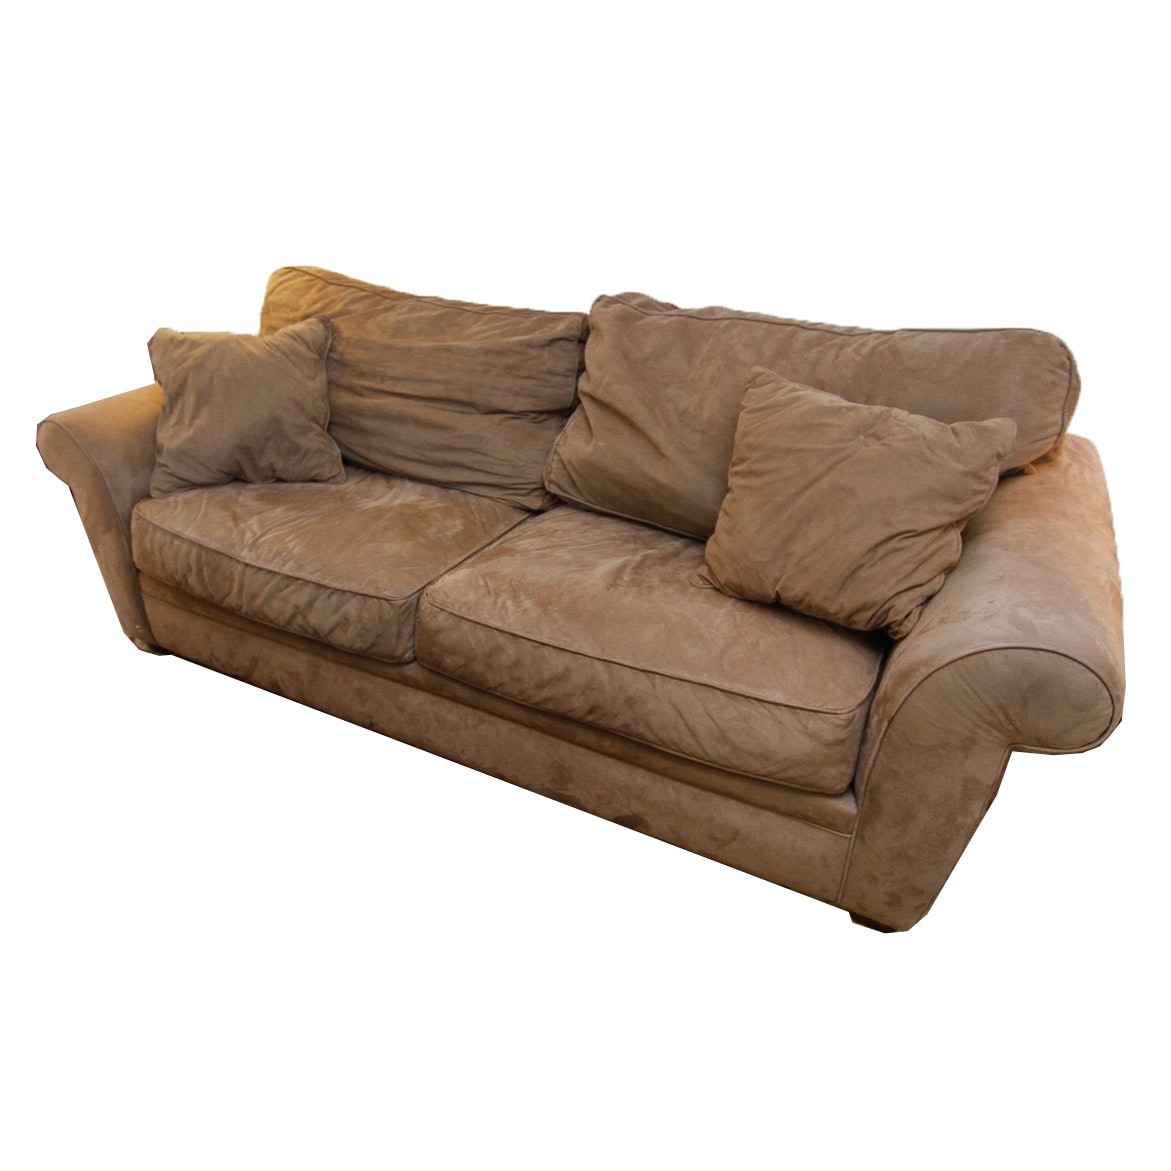 Upholstered Sofa by Havertys